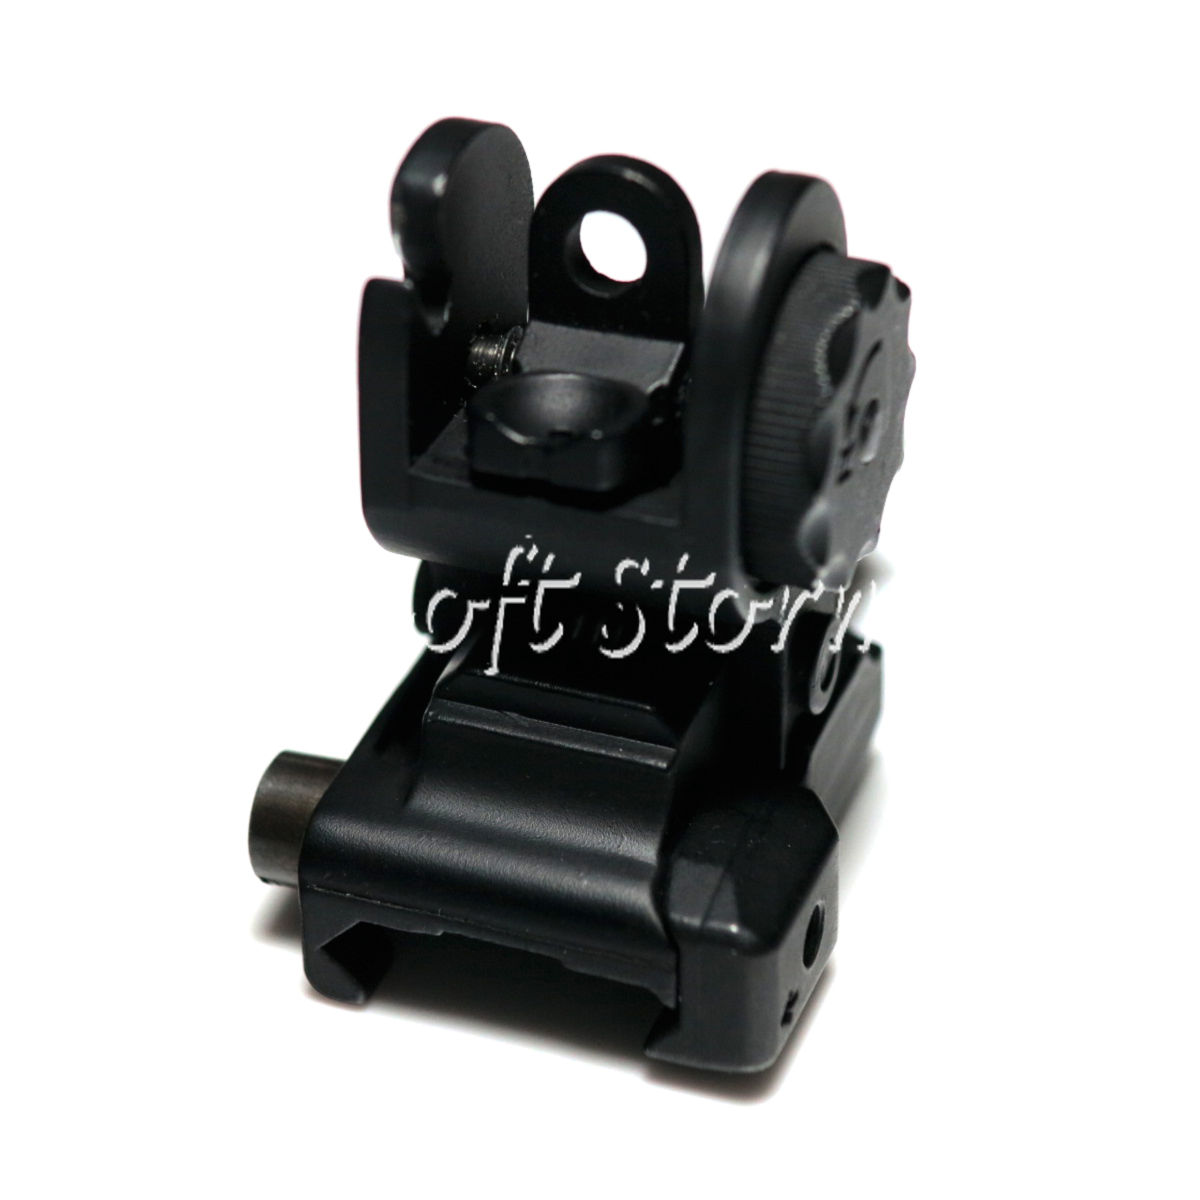 Airsoft AEG Gear D-Boys Tactical 300/600 Airsoft AEG Flip-up Rear Sight